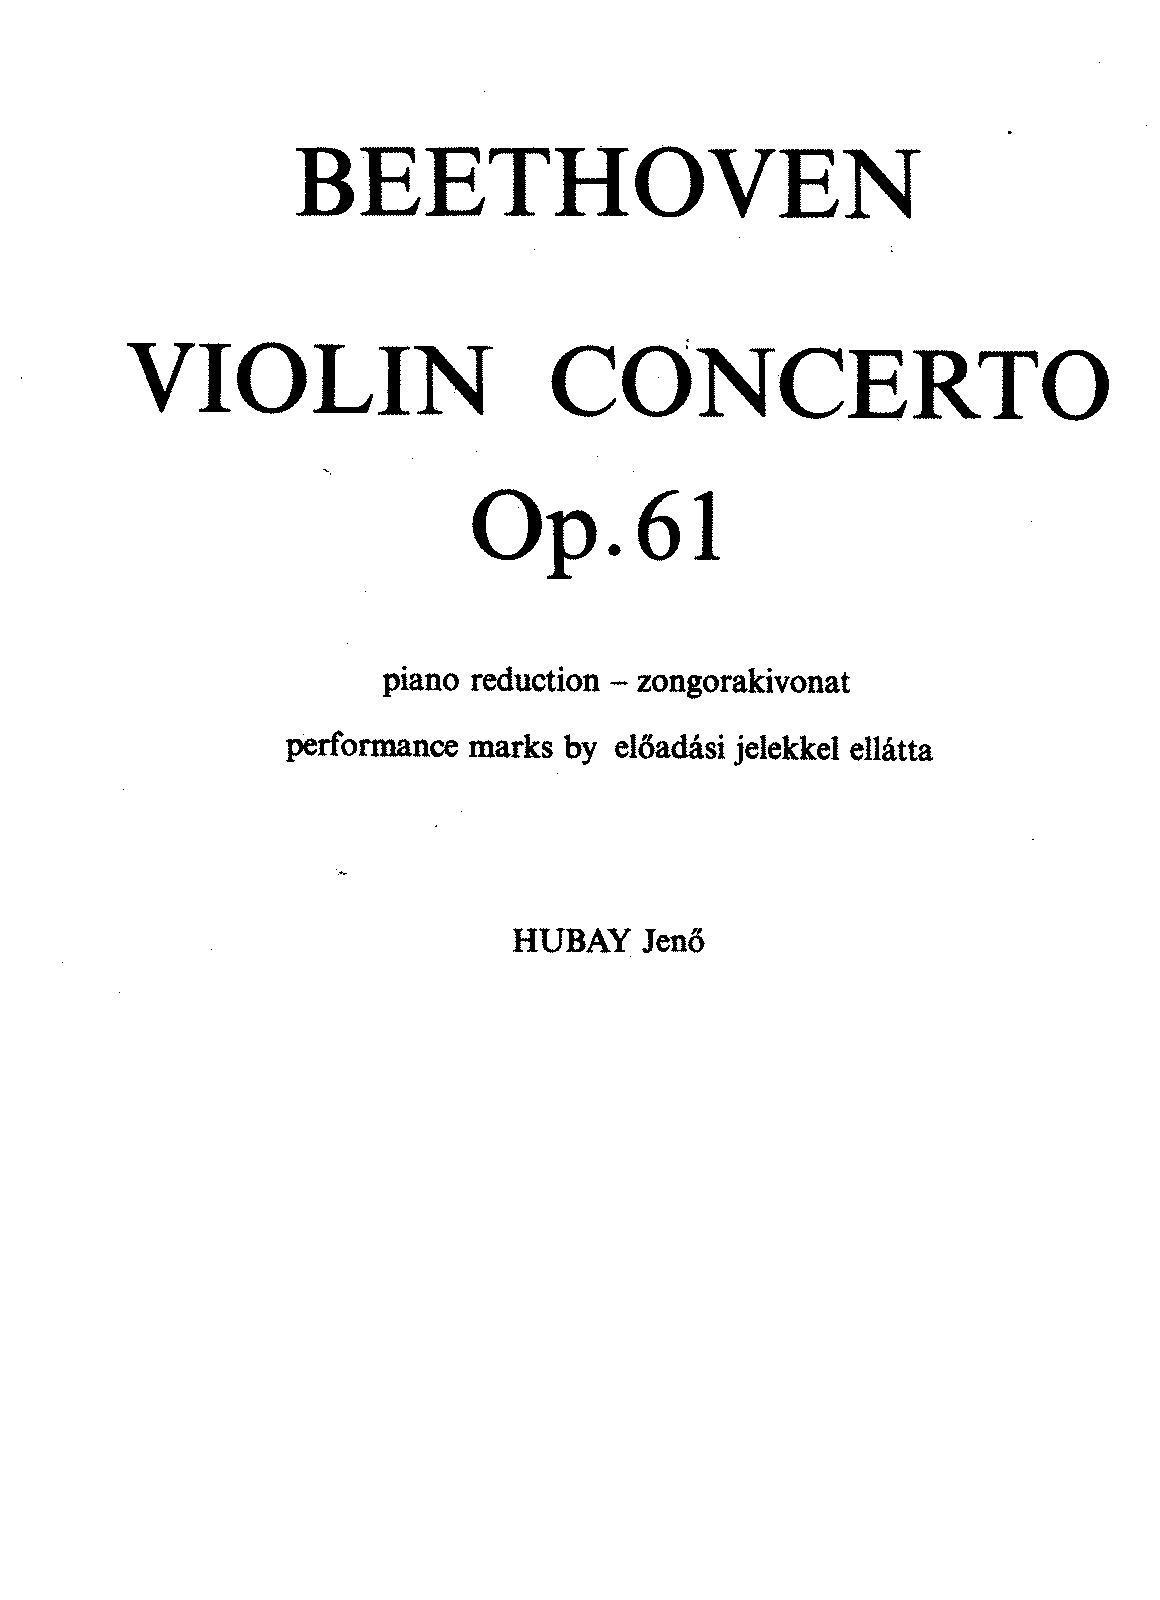 Beethoven ViolinConcerto pianoreduction.pdf